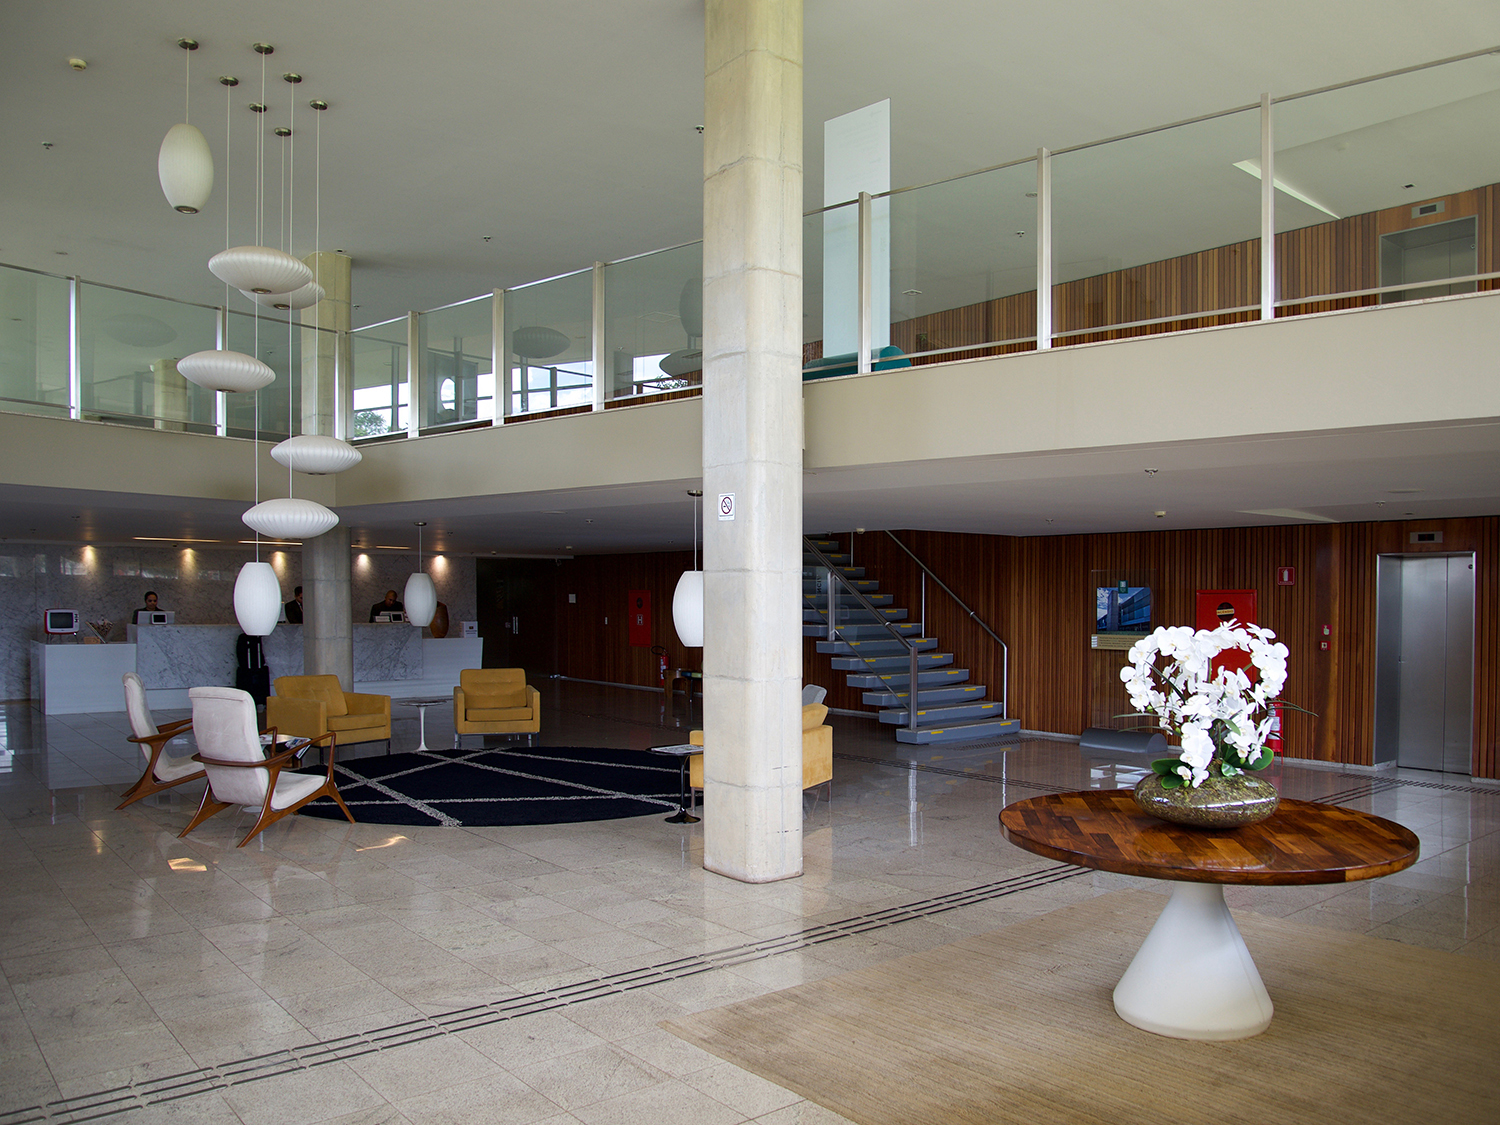 94a370cbddc6c0 ... Brasília Palace Hotel by Oscar Niemeyer is located directly on the  Paranoá dam. © Carsten Krohn. To the annoyance of the architect  the new  ramp in the ...